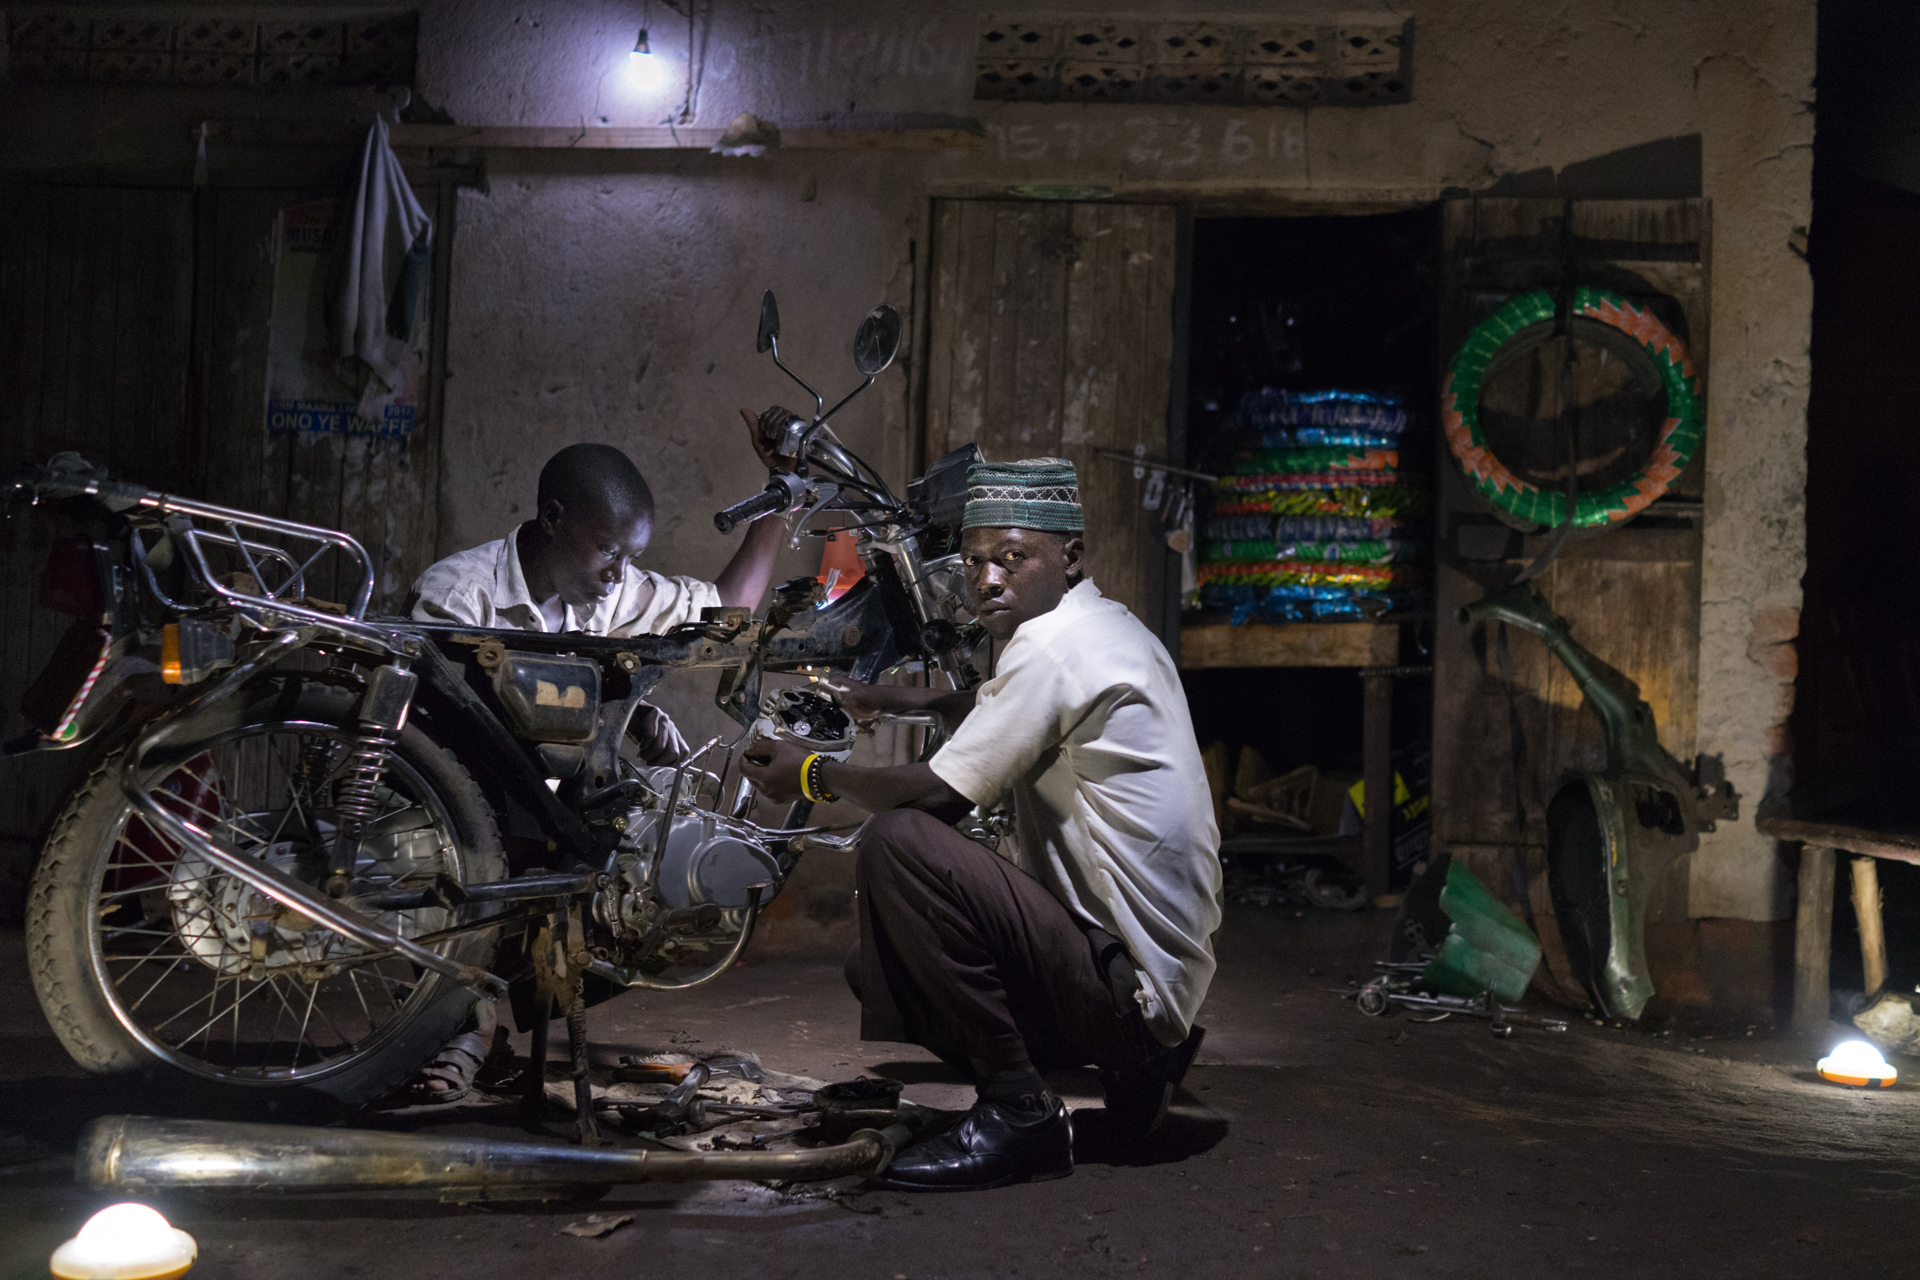 Ibrahim Kalungi and Godfrey Mteza, both 20, work at night in their motorcycle repair shop in Nbeeda, Uganda. The mechanics credit solar lights with enabling them to work longer hours and earn more money. Electricity is a rare luxury in Uganda.